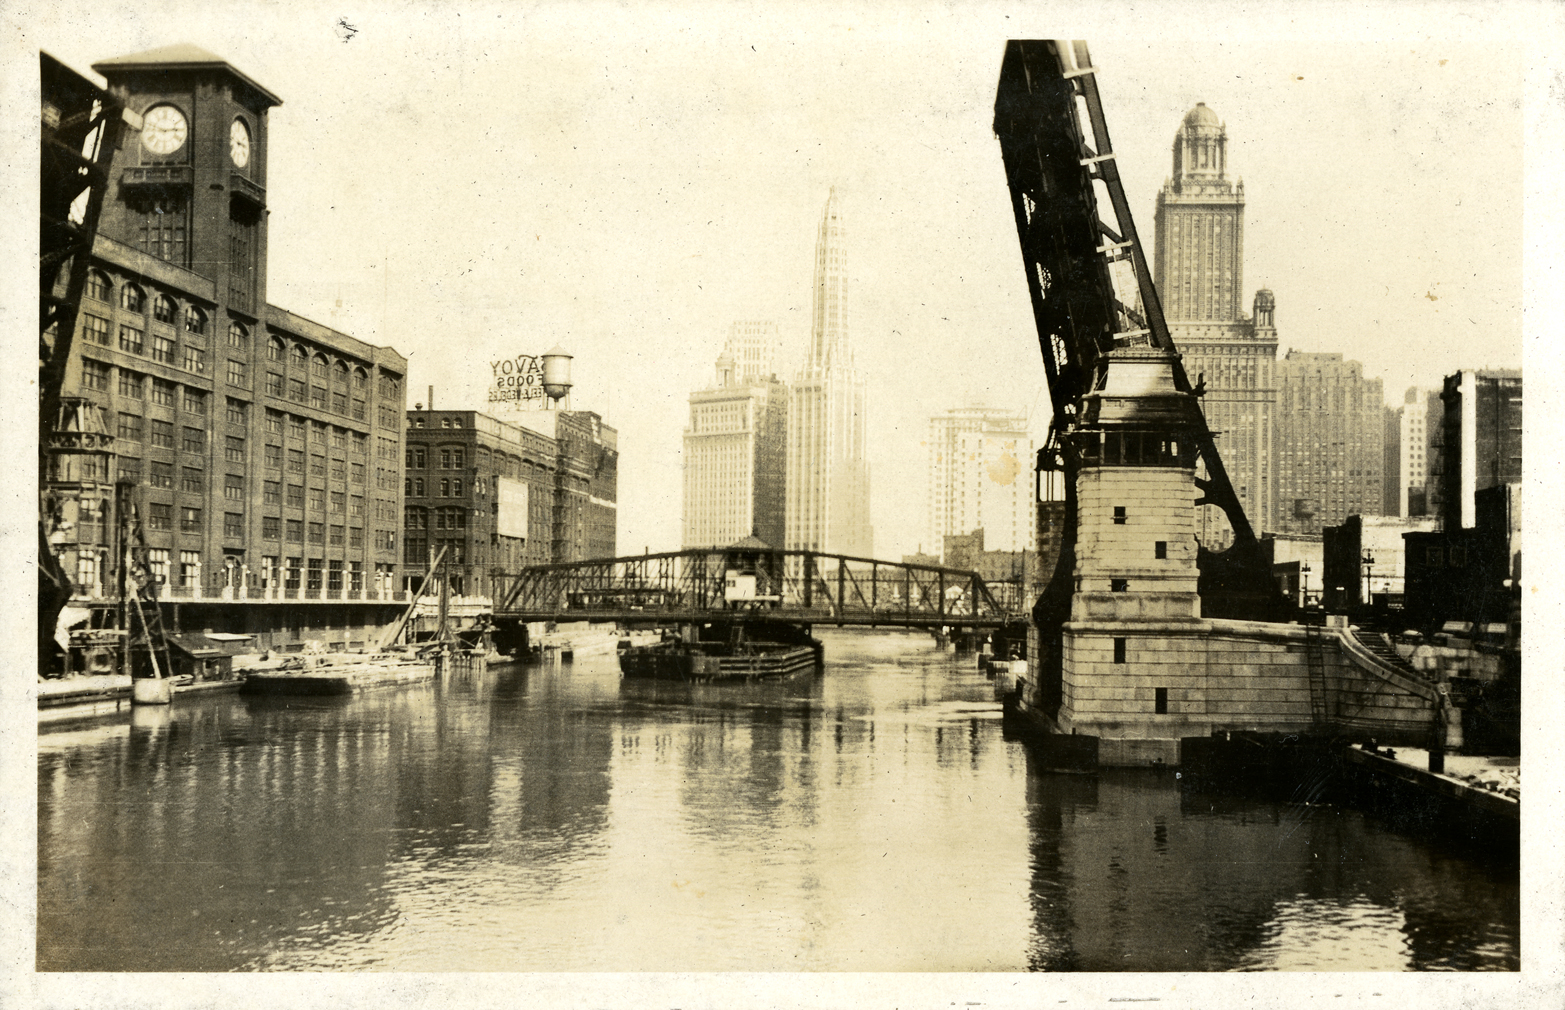 La Salle Street Bridge in Chicago, taken by Onn Mann Liang, 1928